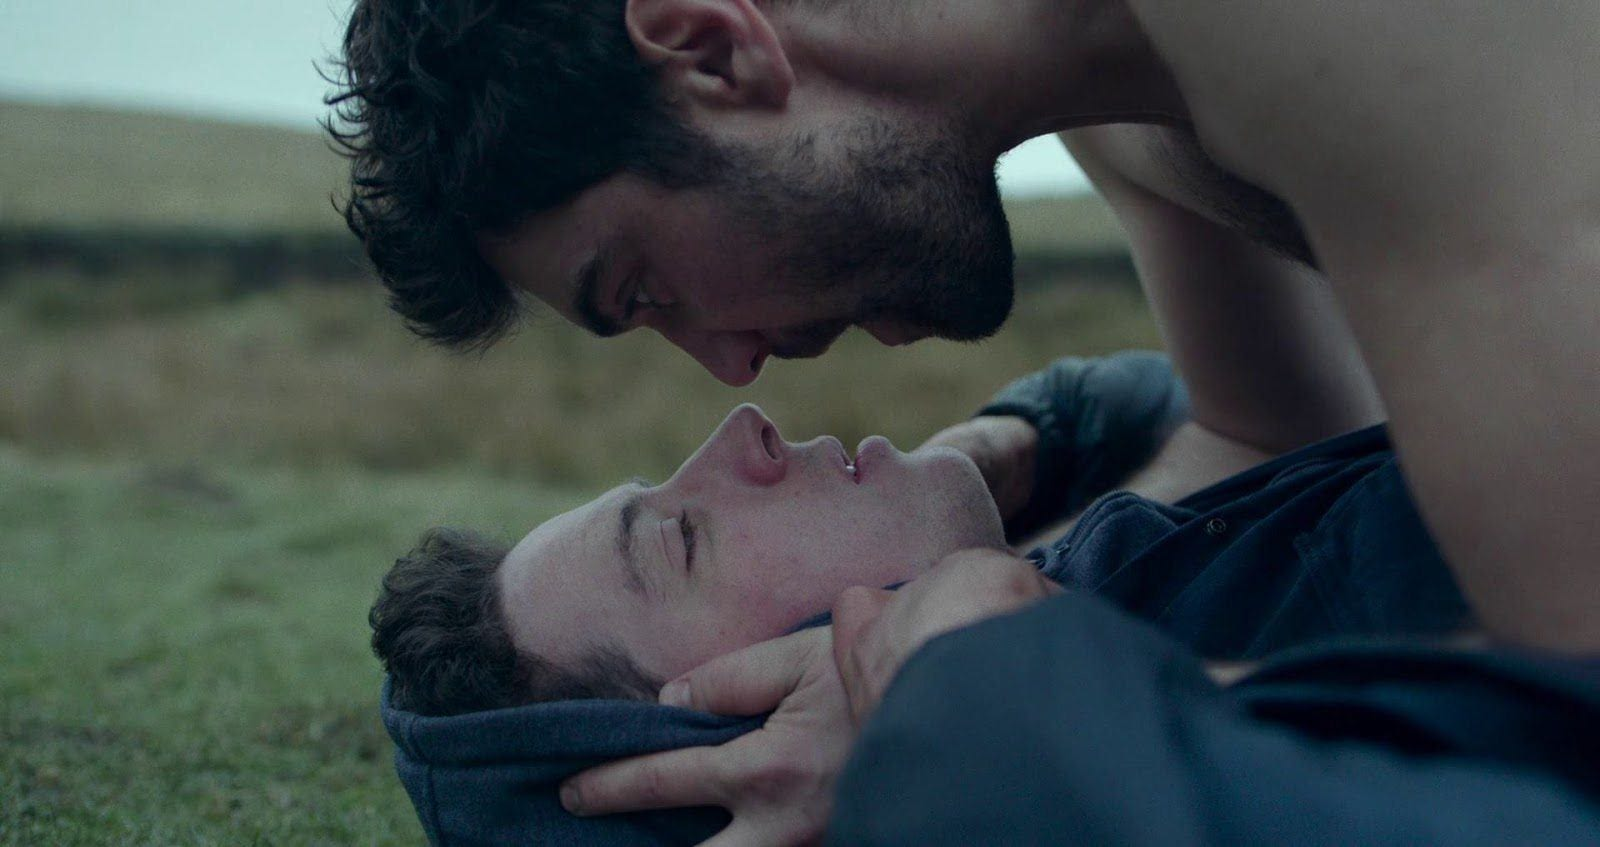 film review of God's Own Country